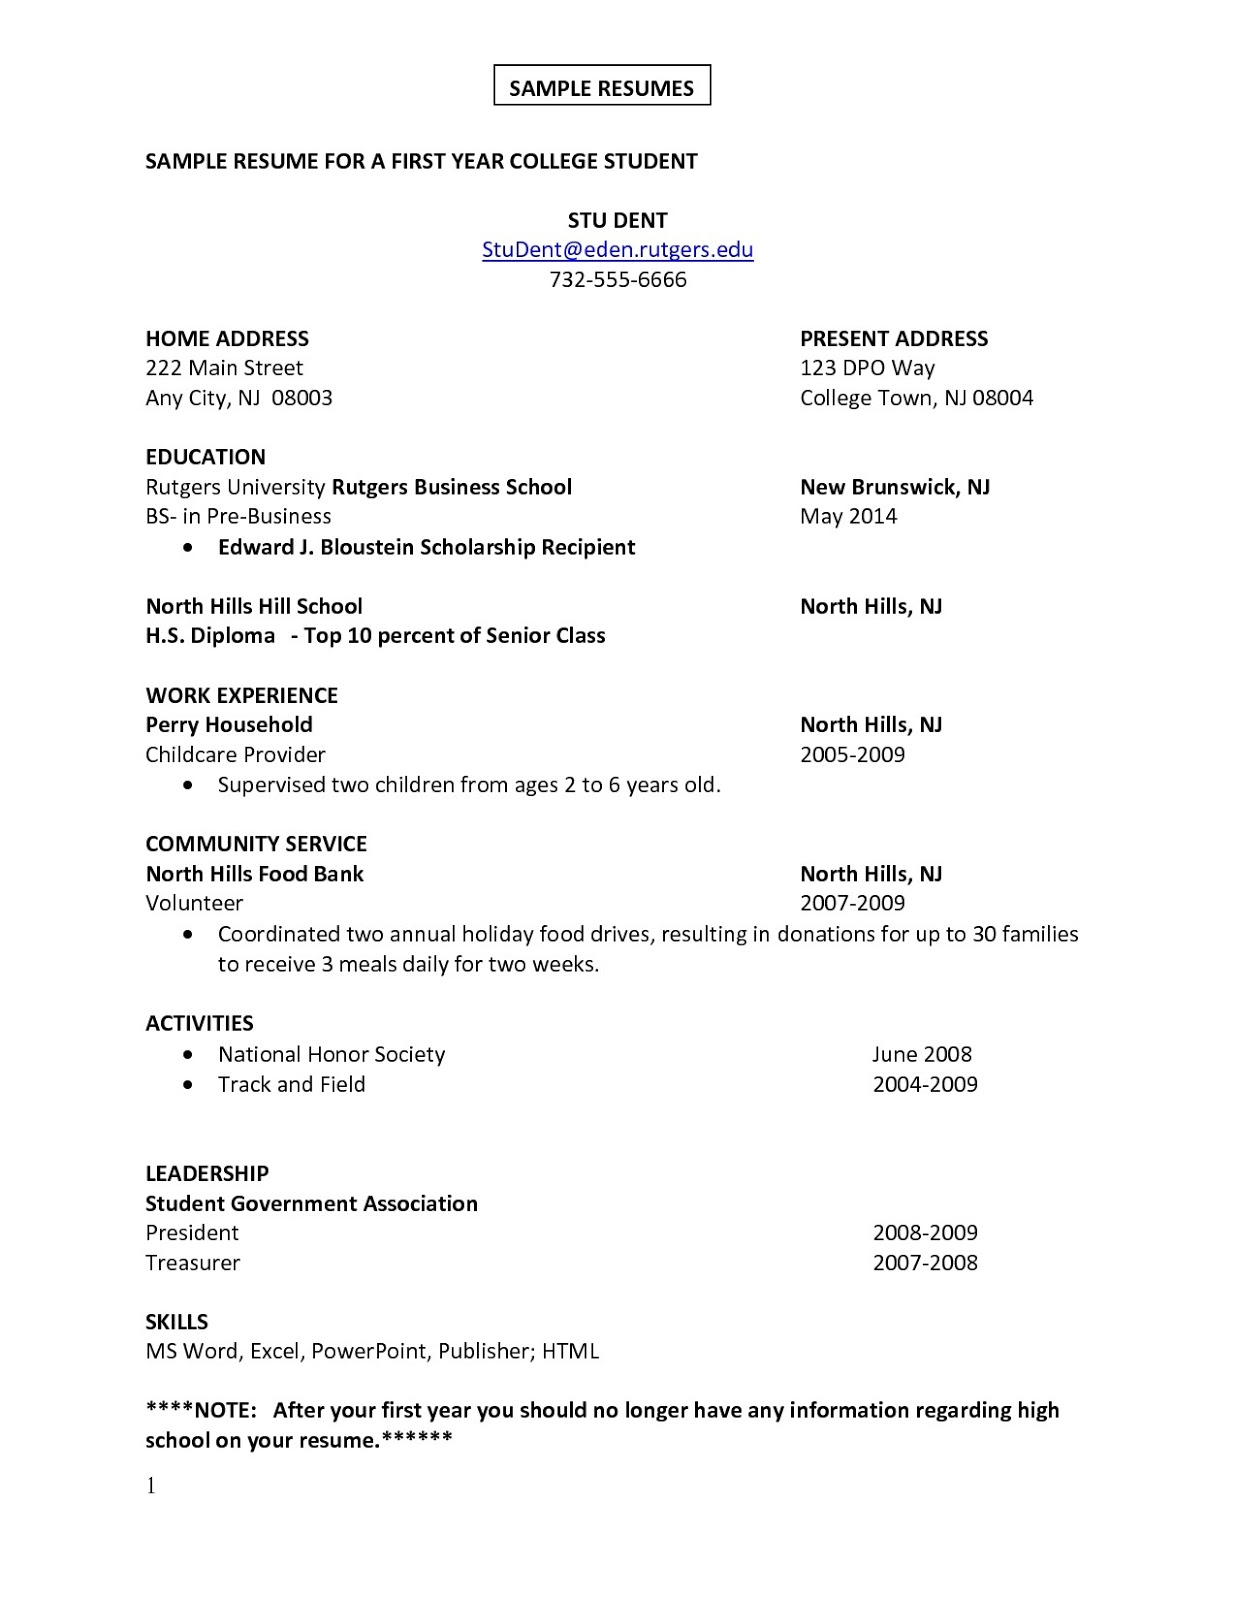 first job resume yahoo resume skills for server first job resume yahoo resume for first job yahoo answers n mployment resume format pdf linkedin resume examples